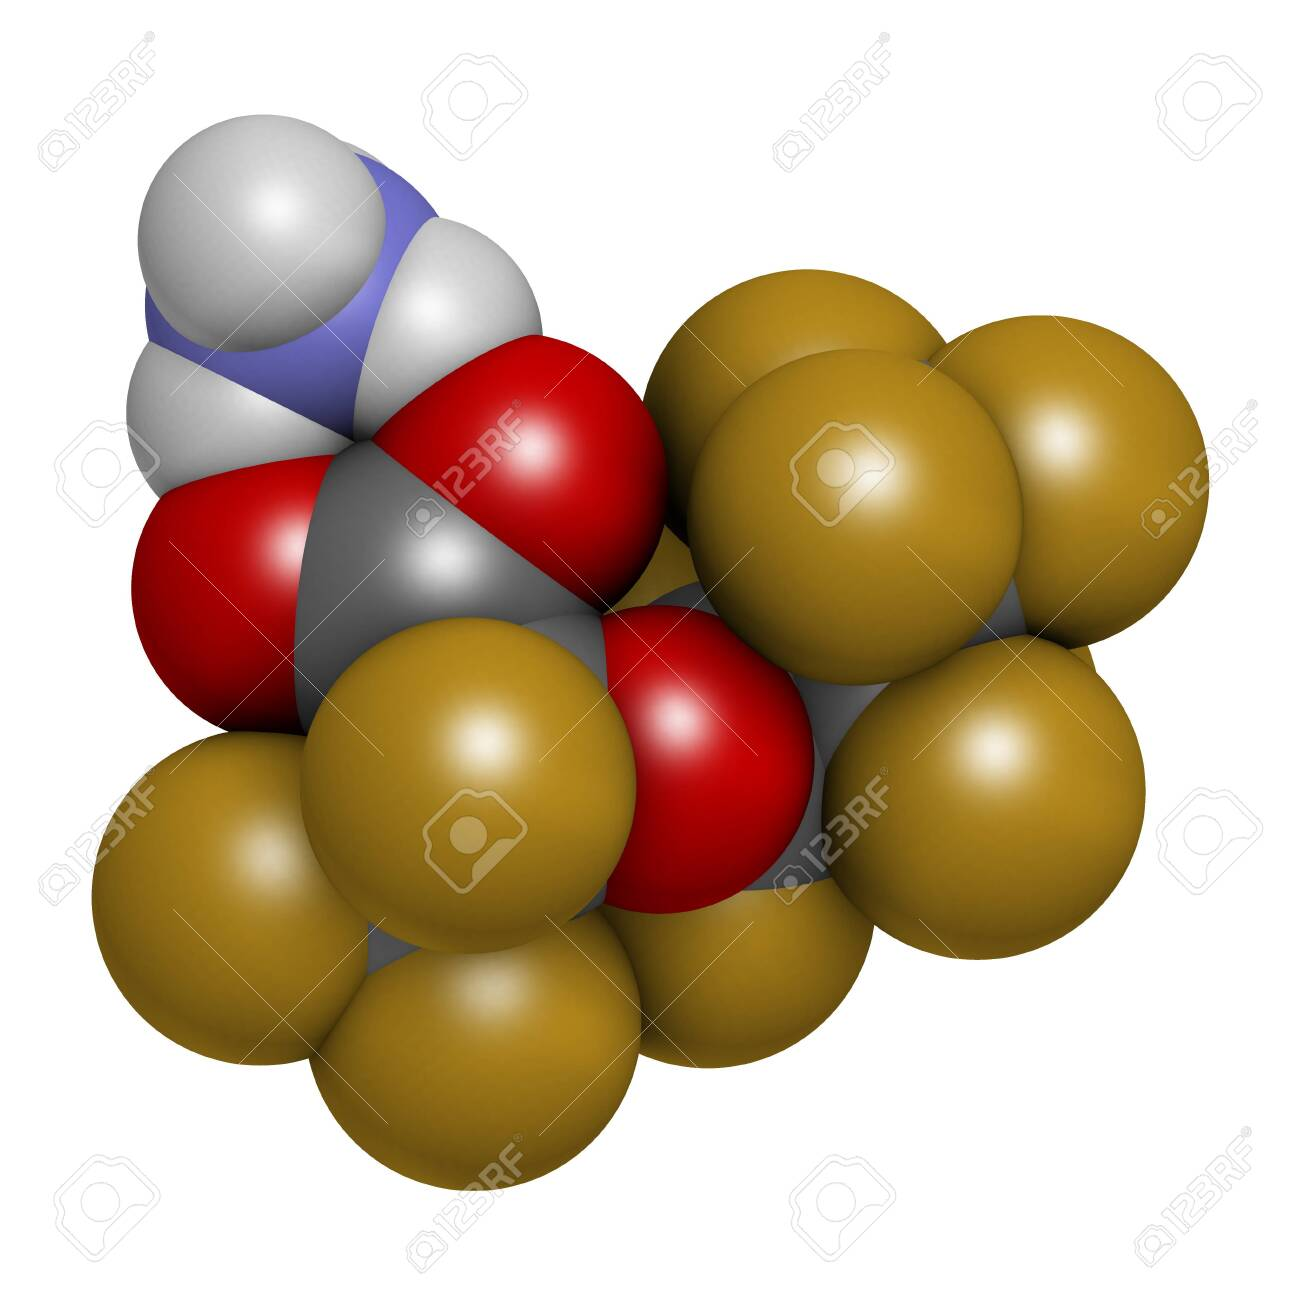 Ammonium perfluoro(2-methyl-3-oxahexanoate) molecule, also known as GenX or FRD-902. 3D rendering. Atoms are represented as spheres with conventional color coding: hydrogen (white), carbon (grey), oxygen (red), nitrogen (blue), fluorine (gold). - 153526400